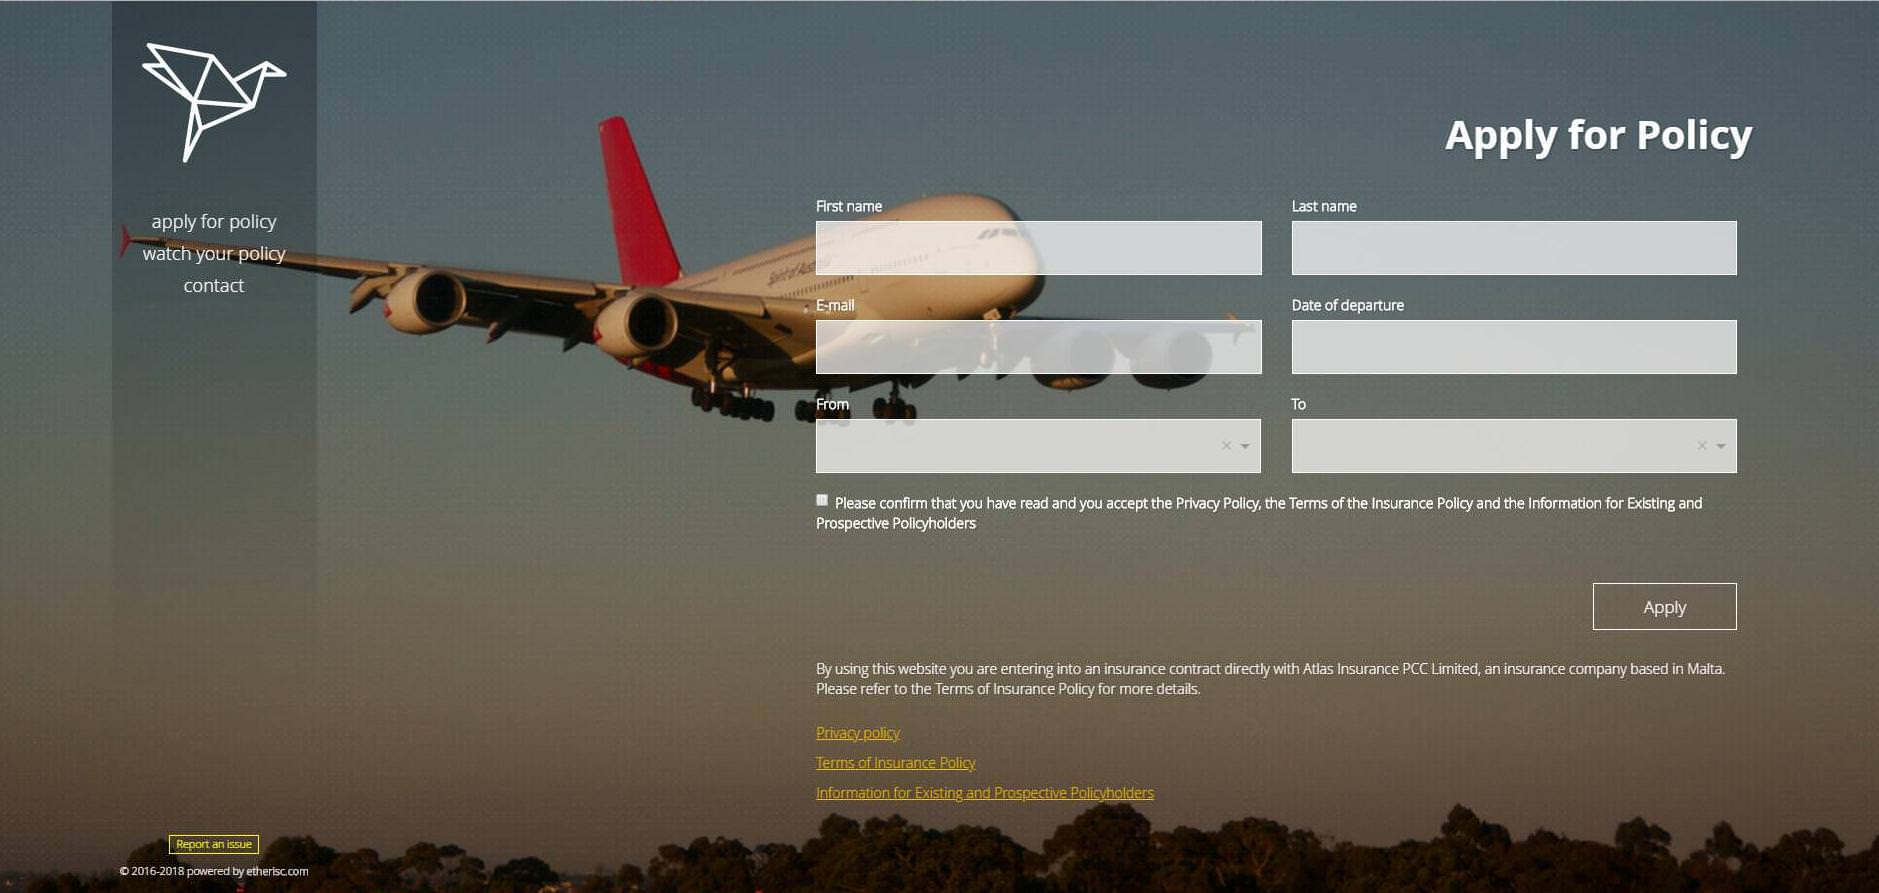 Etherisc's Flight Insurance product